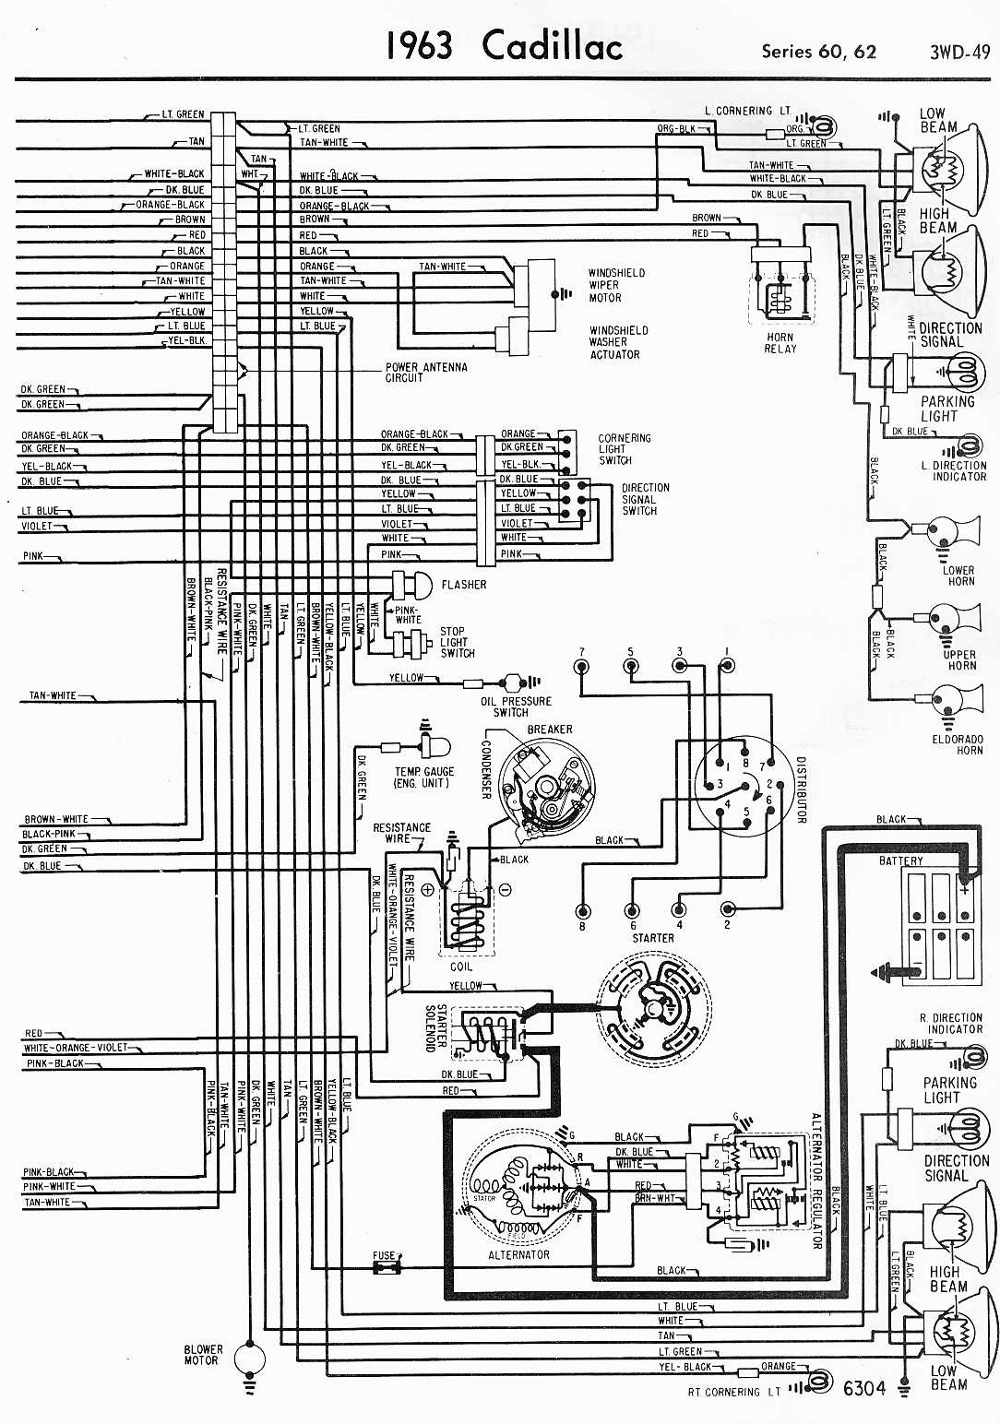 69 Cadillac Wiring Diagram Electricity Basics 101 Harness Wire Center U2022 Rh Statsrsk Co 2003 Cts